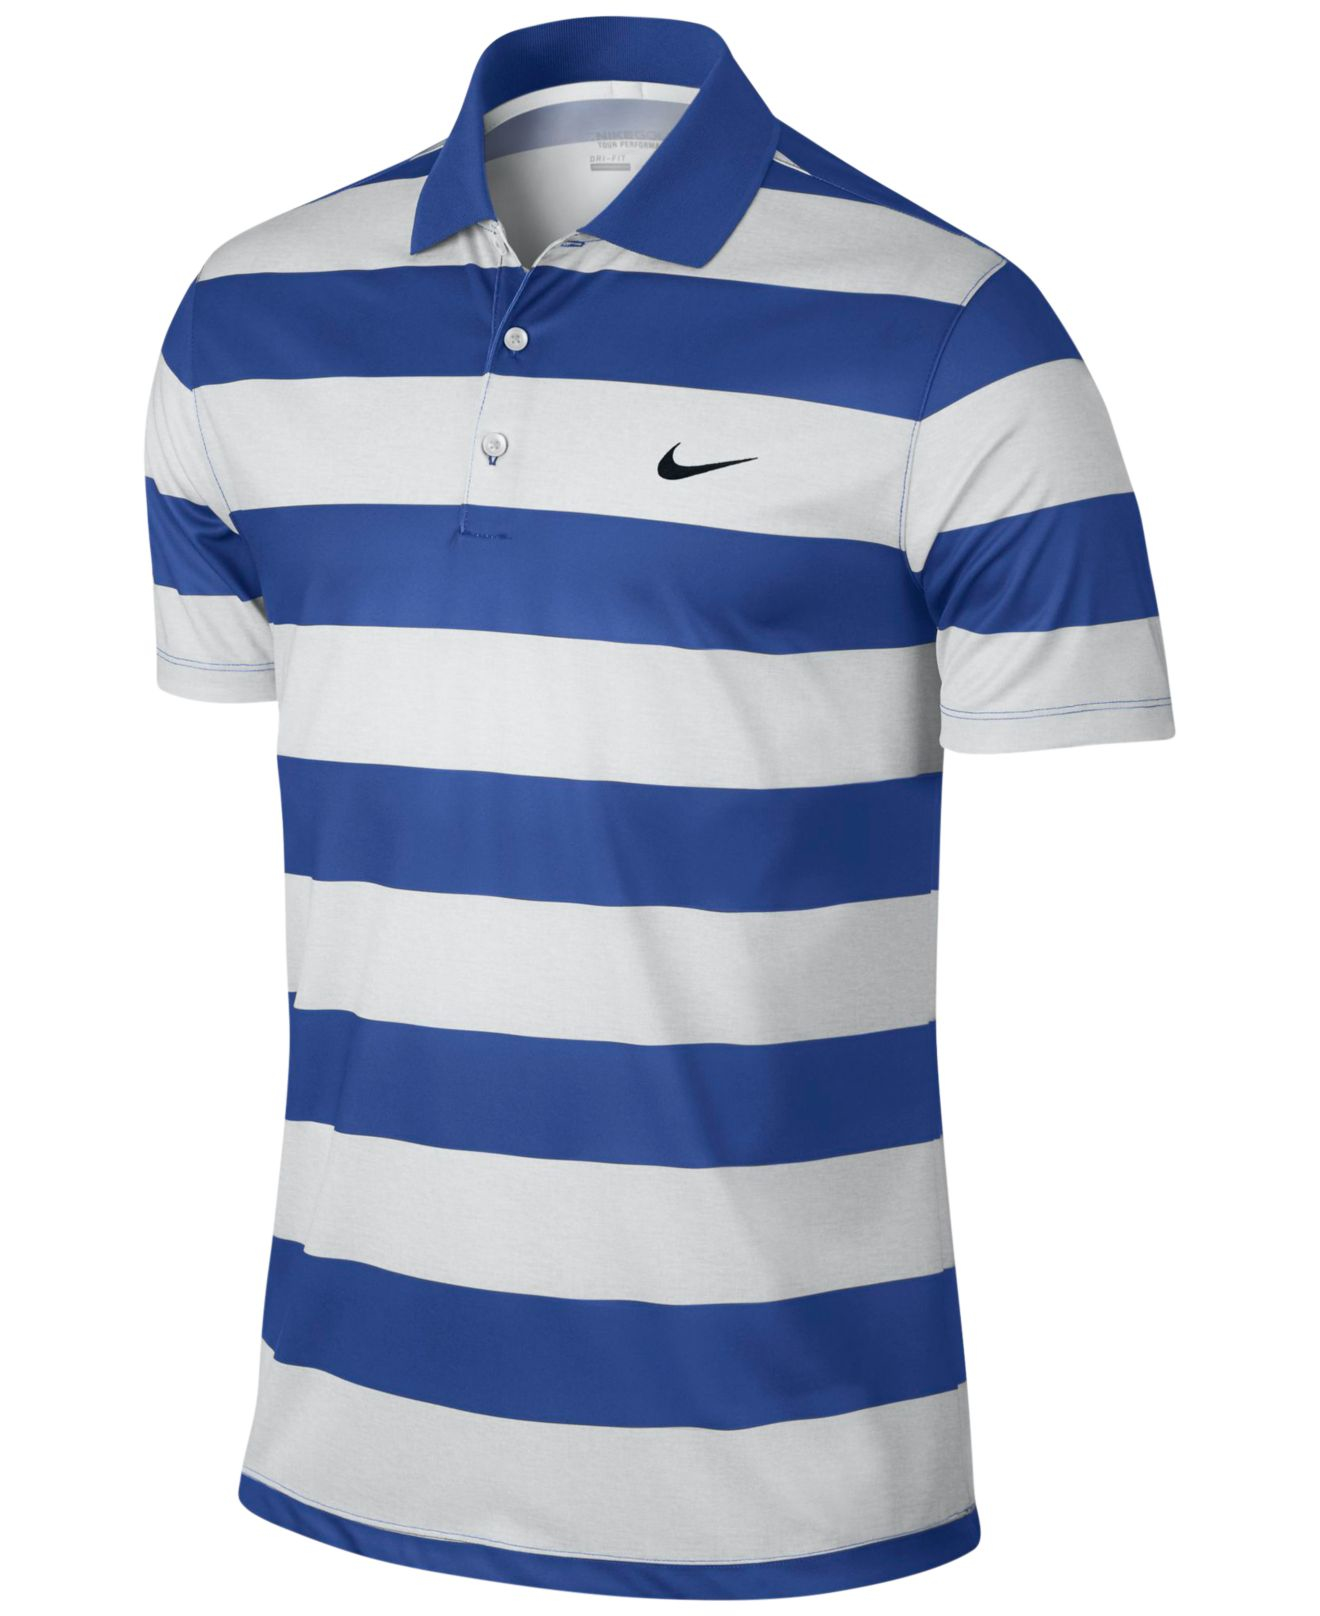 Nike men 39 s victory bold dri fit golf polo in white for men for Nike dri fit victory golf shirts